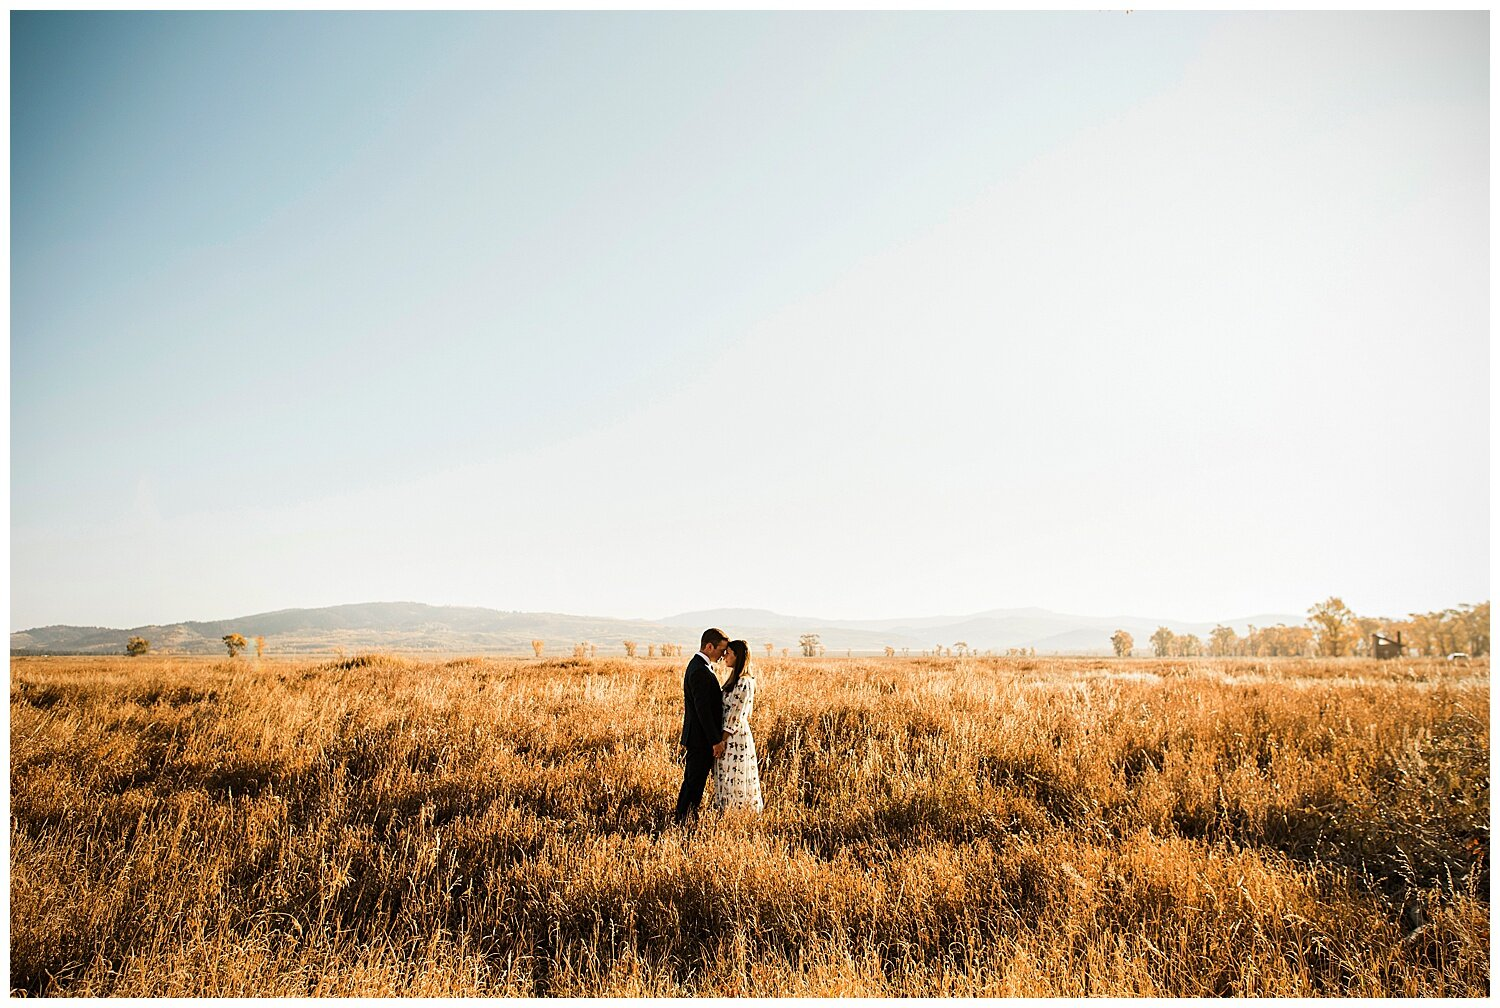 A couple posing for a picture while holding each other's hand in a middle of a field with sky as the background